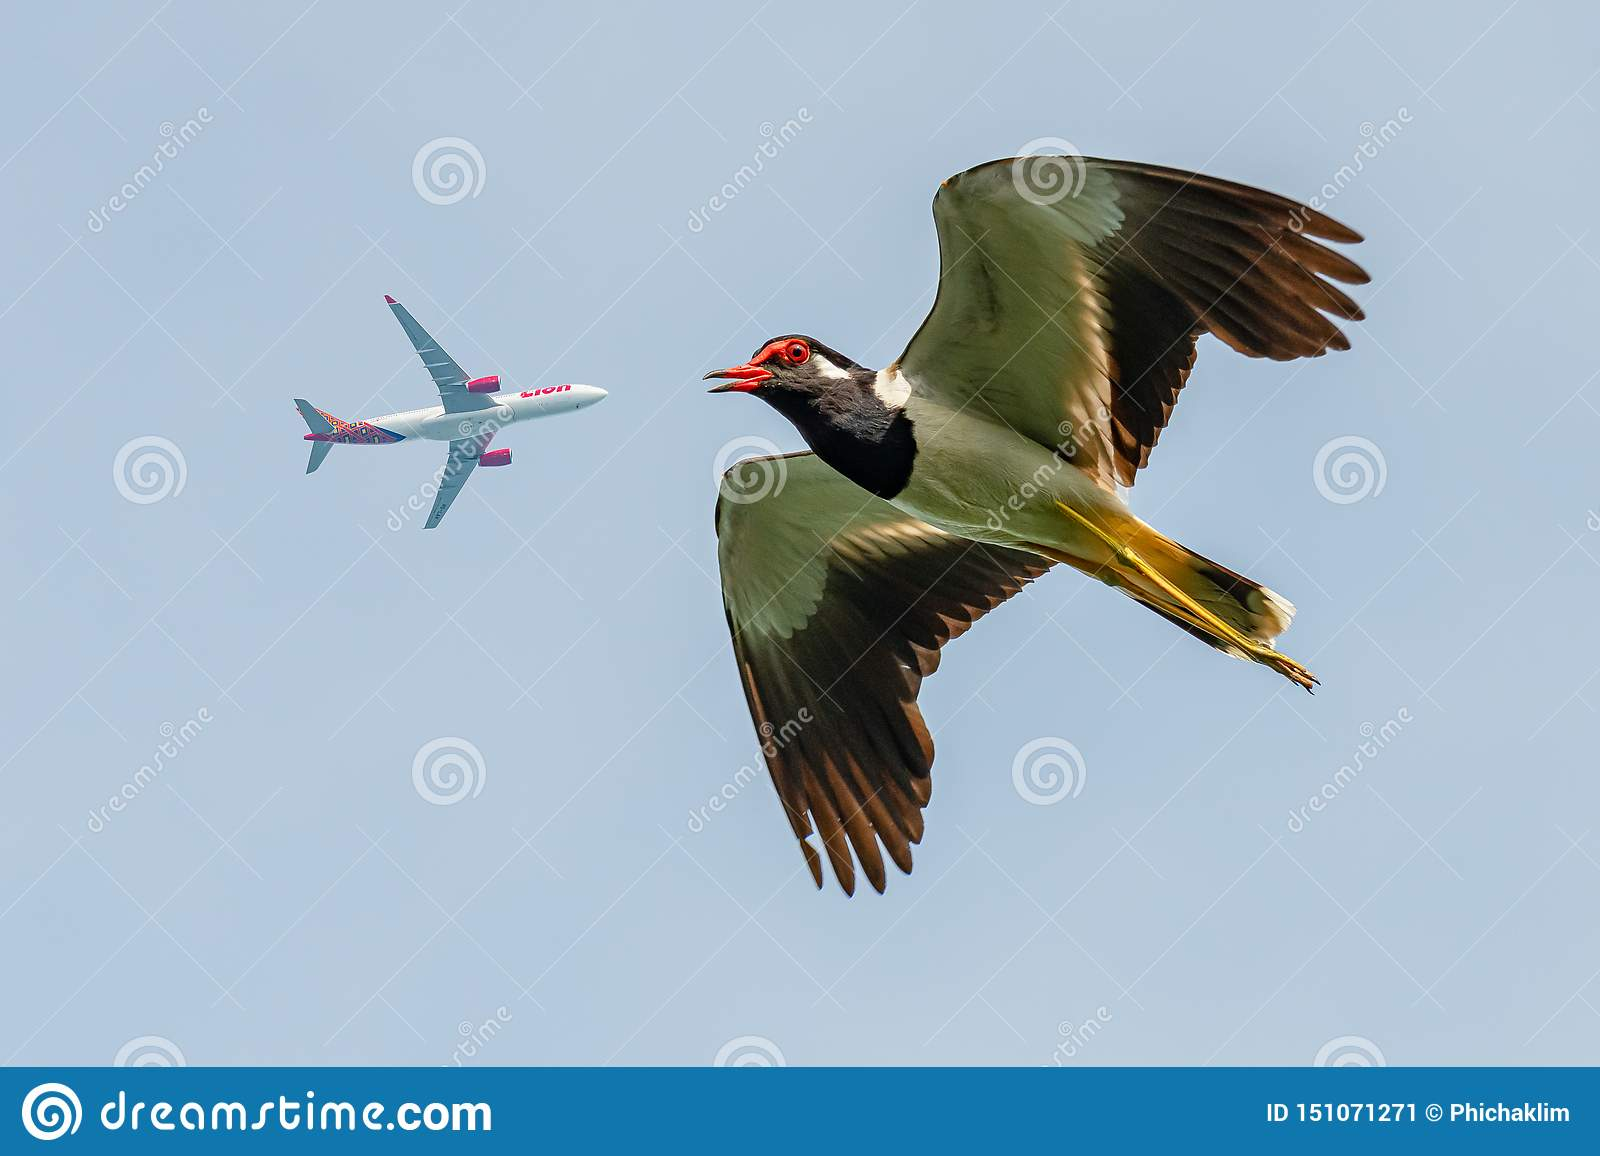 Red-Wattled Lapwing in flight with commercial airplane flying above as background